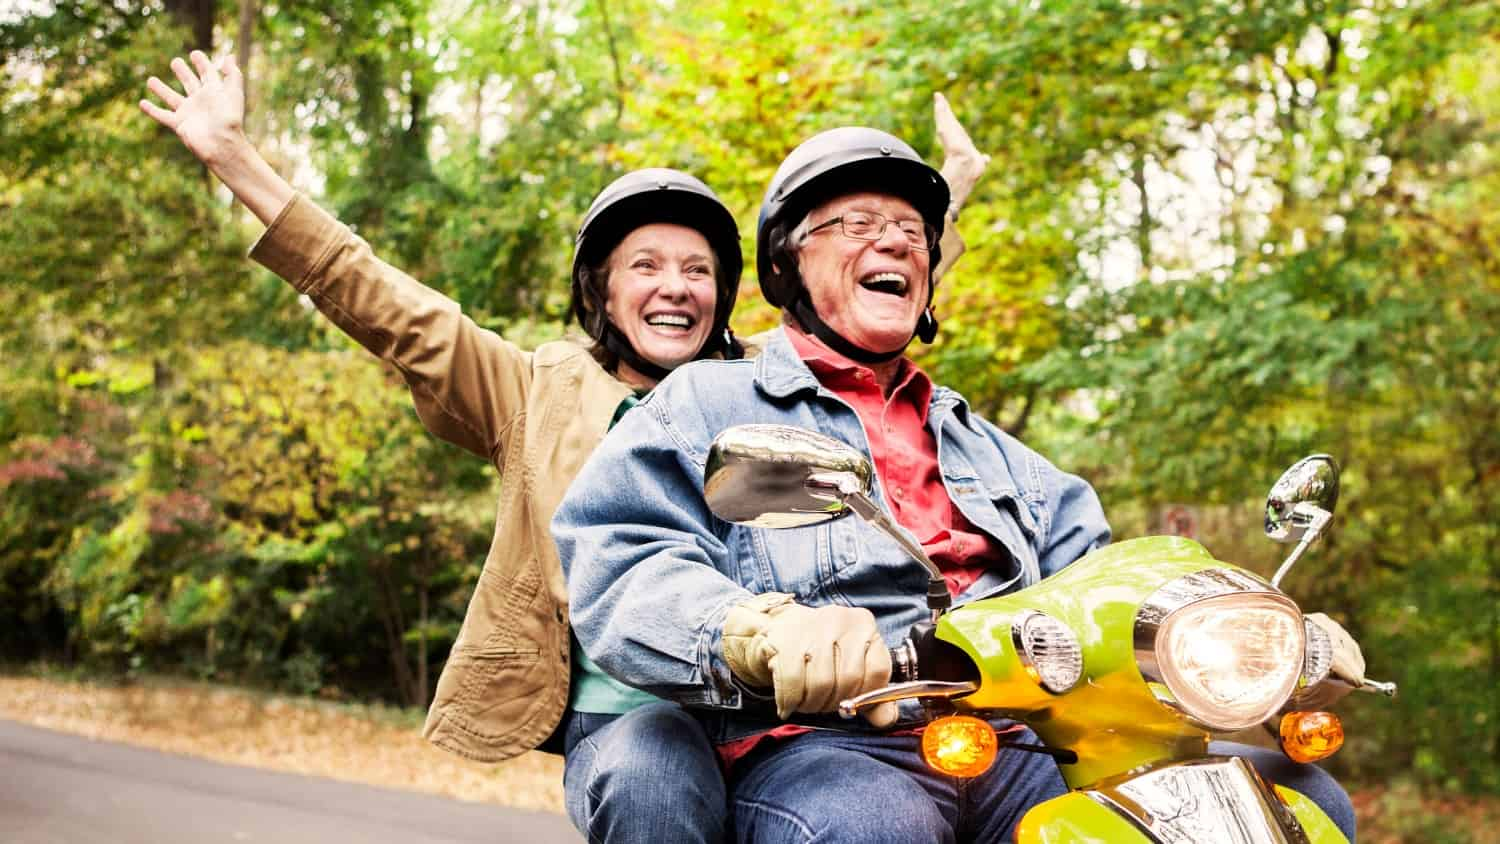 5 Simple, Yet Powerful, Ways to Have More Fun After 60